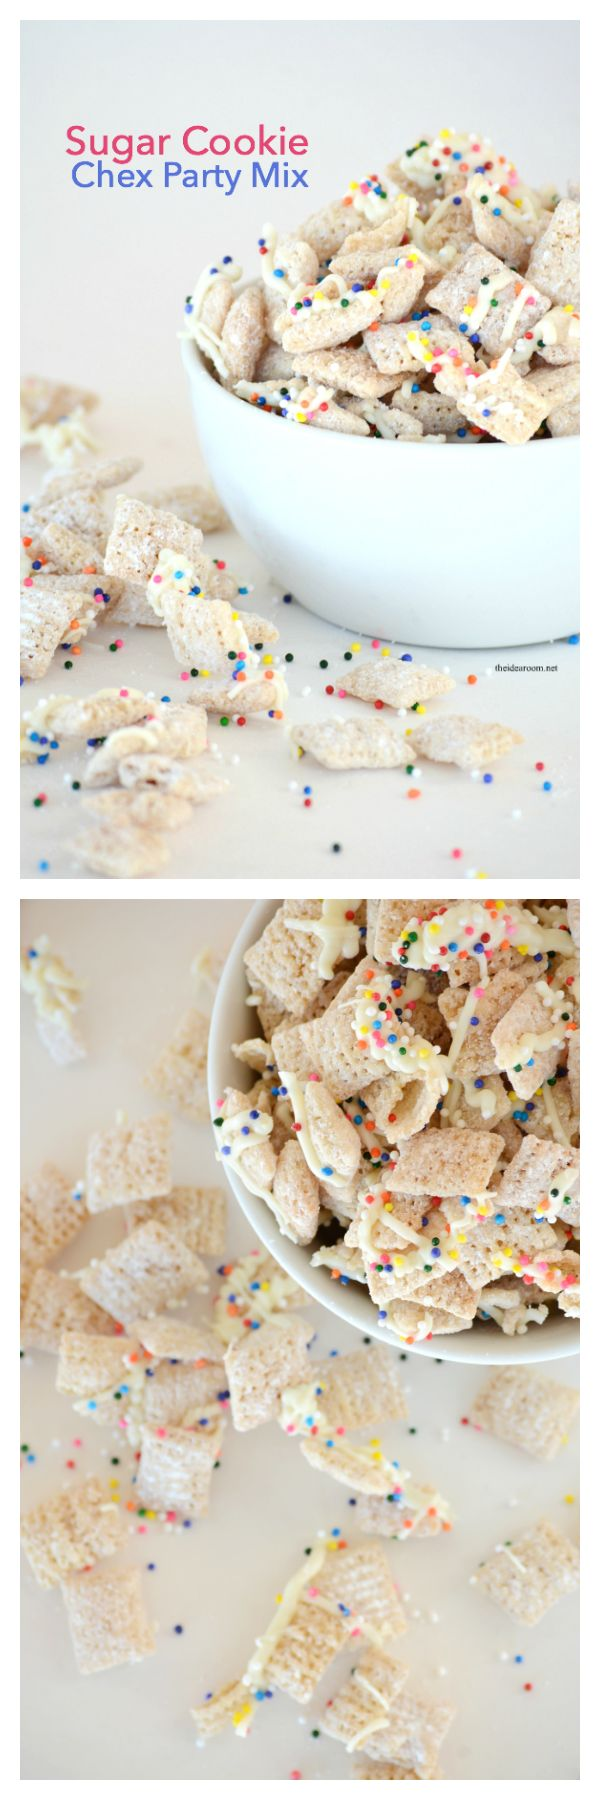 sugar cookie chex party mix pin